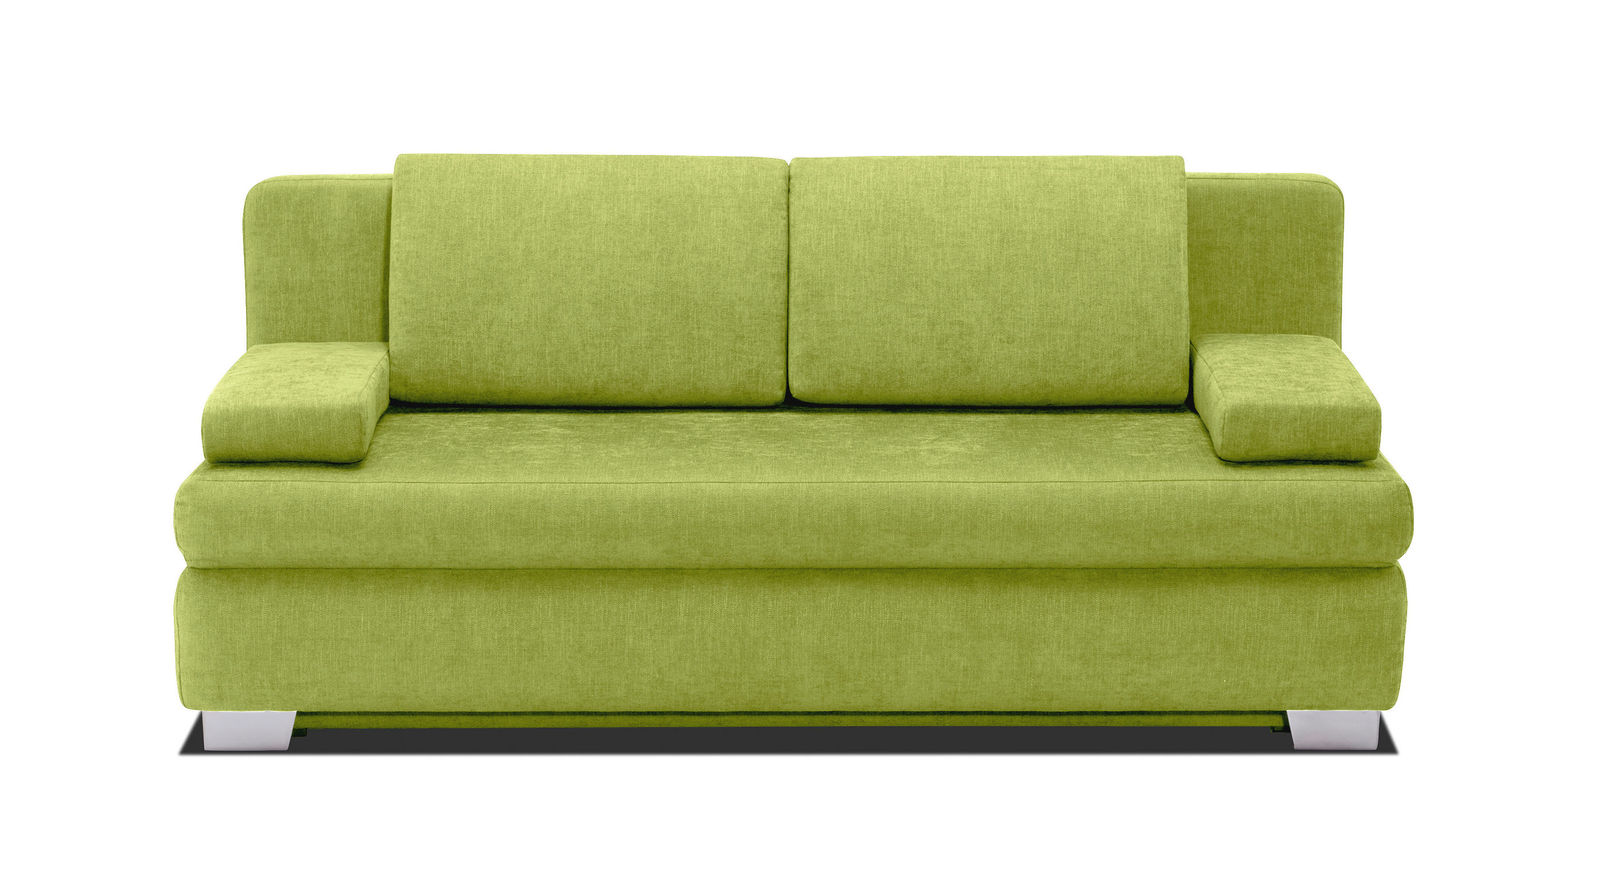 Modernes Schlafsofa Hill-Brook mit Webstoff in Limette